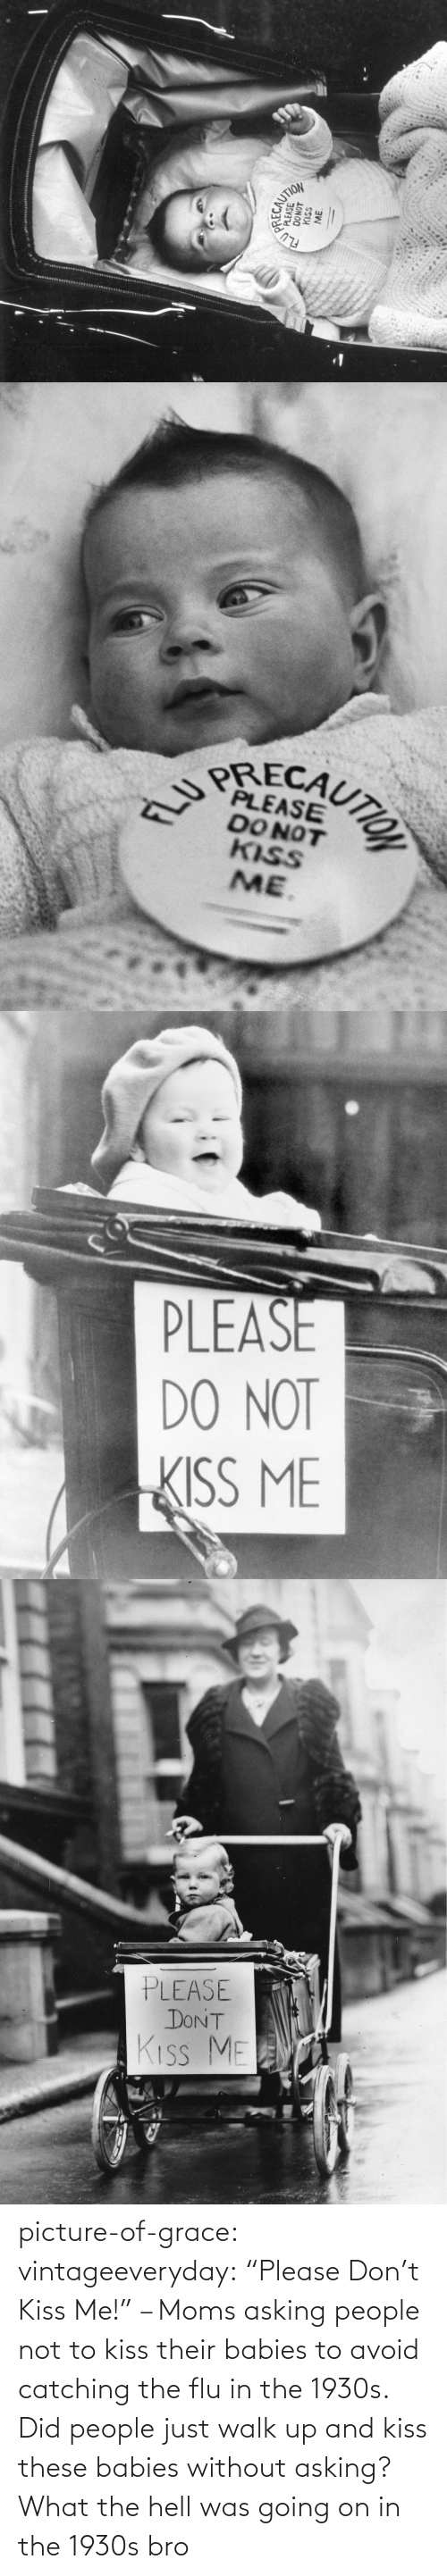 """Asking: picture-of-grace:  vintageeveryday: """"Please Don't Kiss Me!"""" – Moms asking people not to kiss their babies to avoid catching the flu in the 1930s.   Did people just walk up and kiss these babies without asking? What the hell was going on in the 1930s bro"""